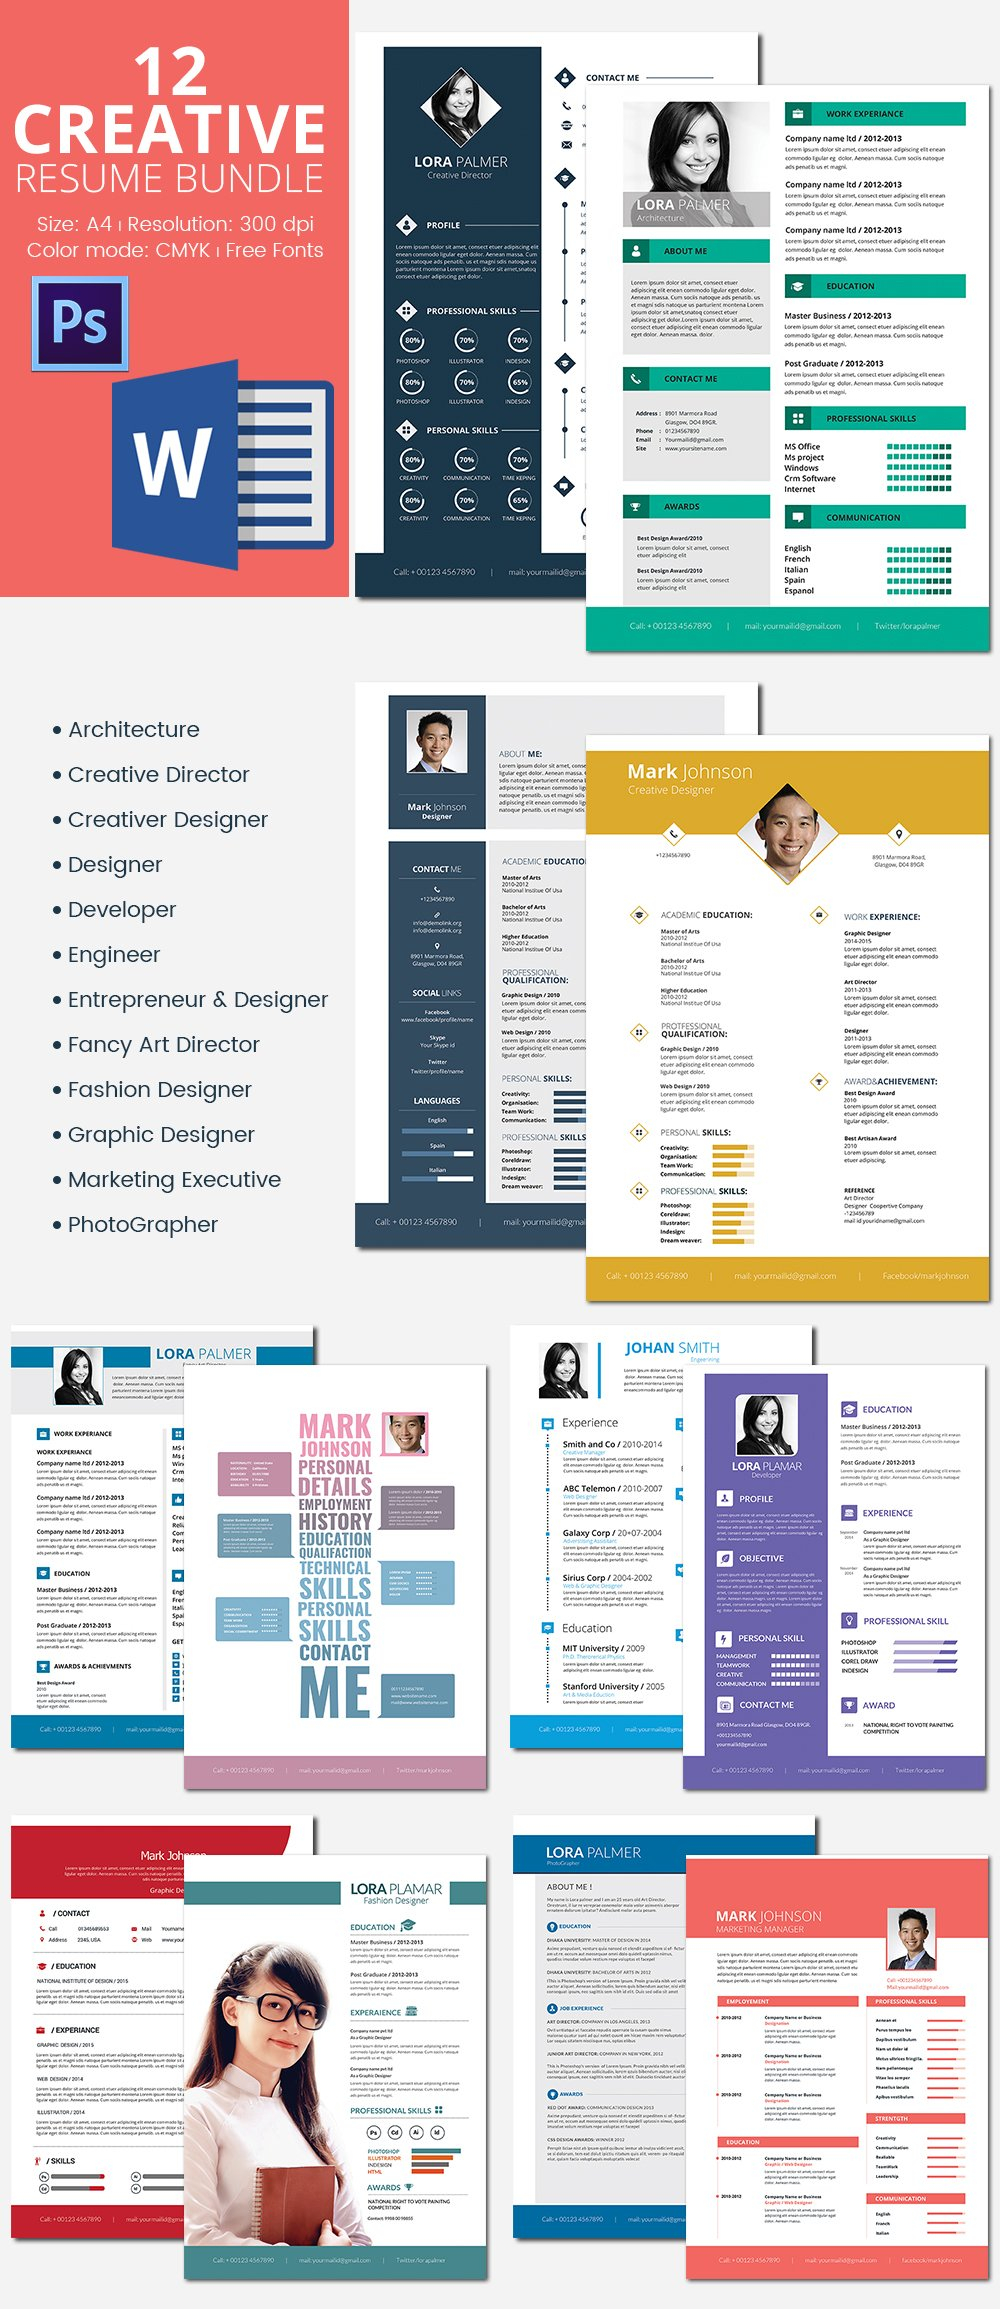 Responsive Resume Template Free Download - 41 E Page Resume Templates Free Samples Examples & formats